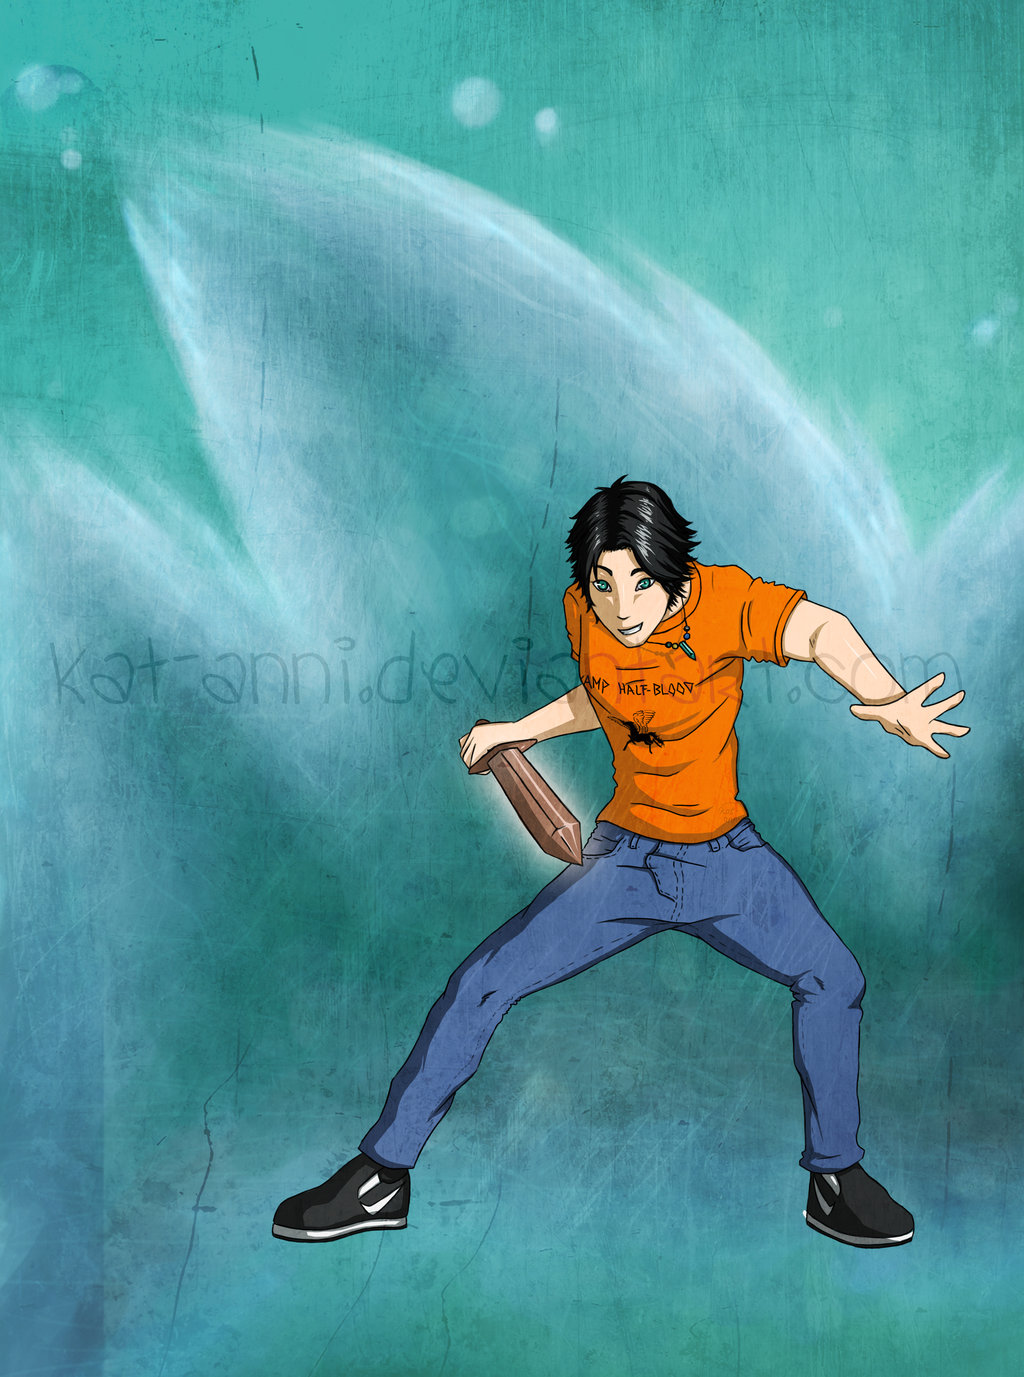 Get Poseidon Pictures Of Percy Jackson Images